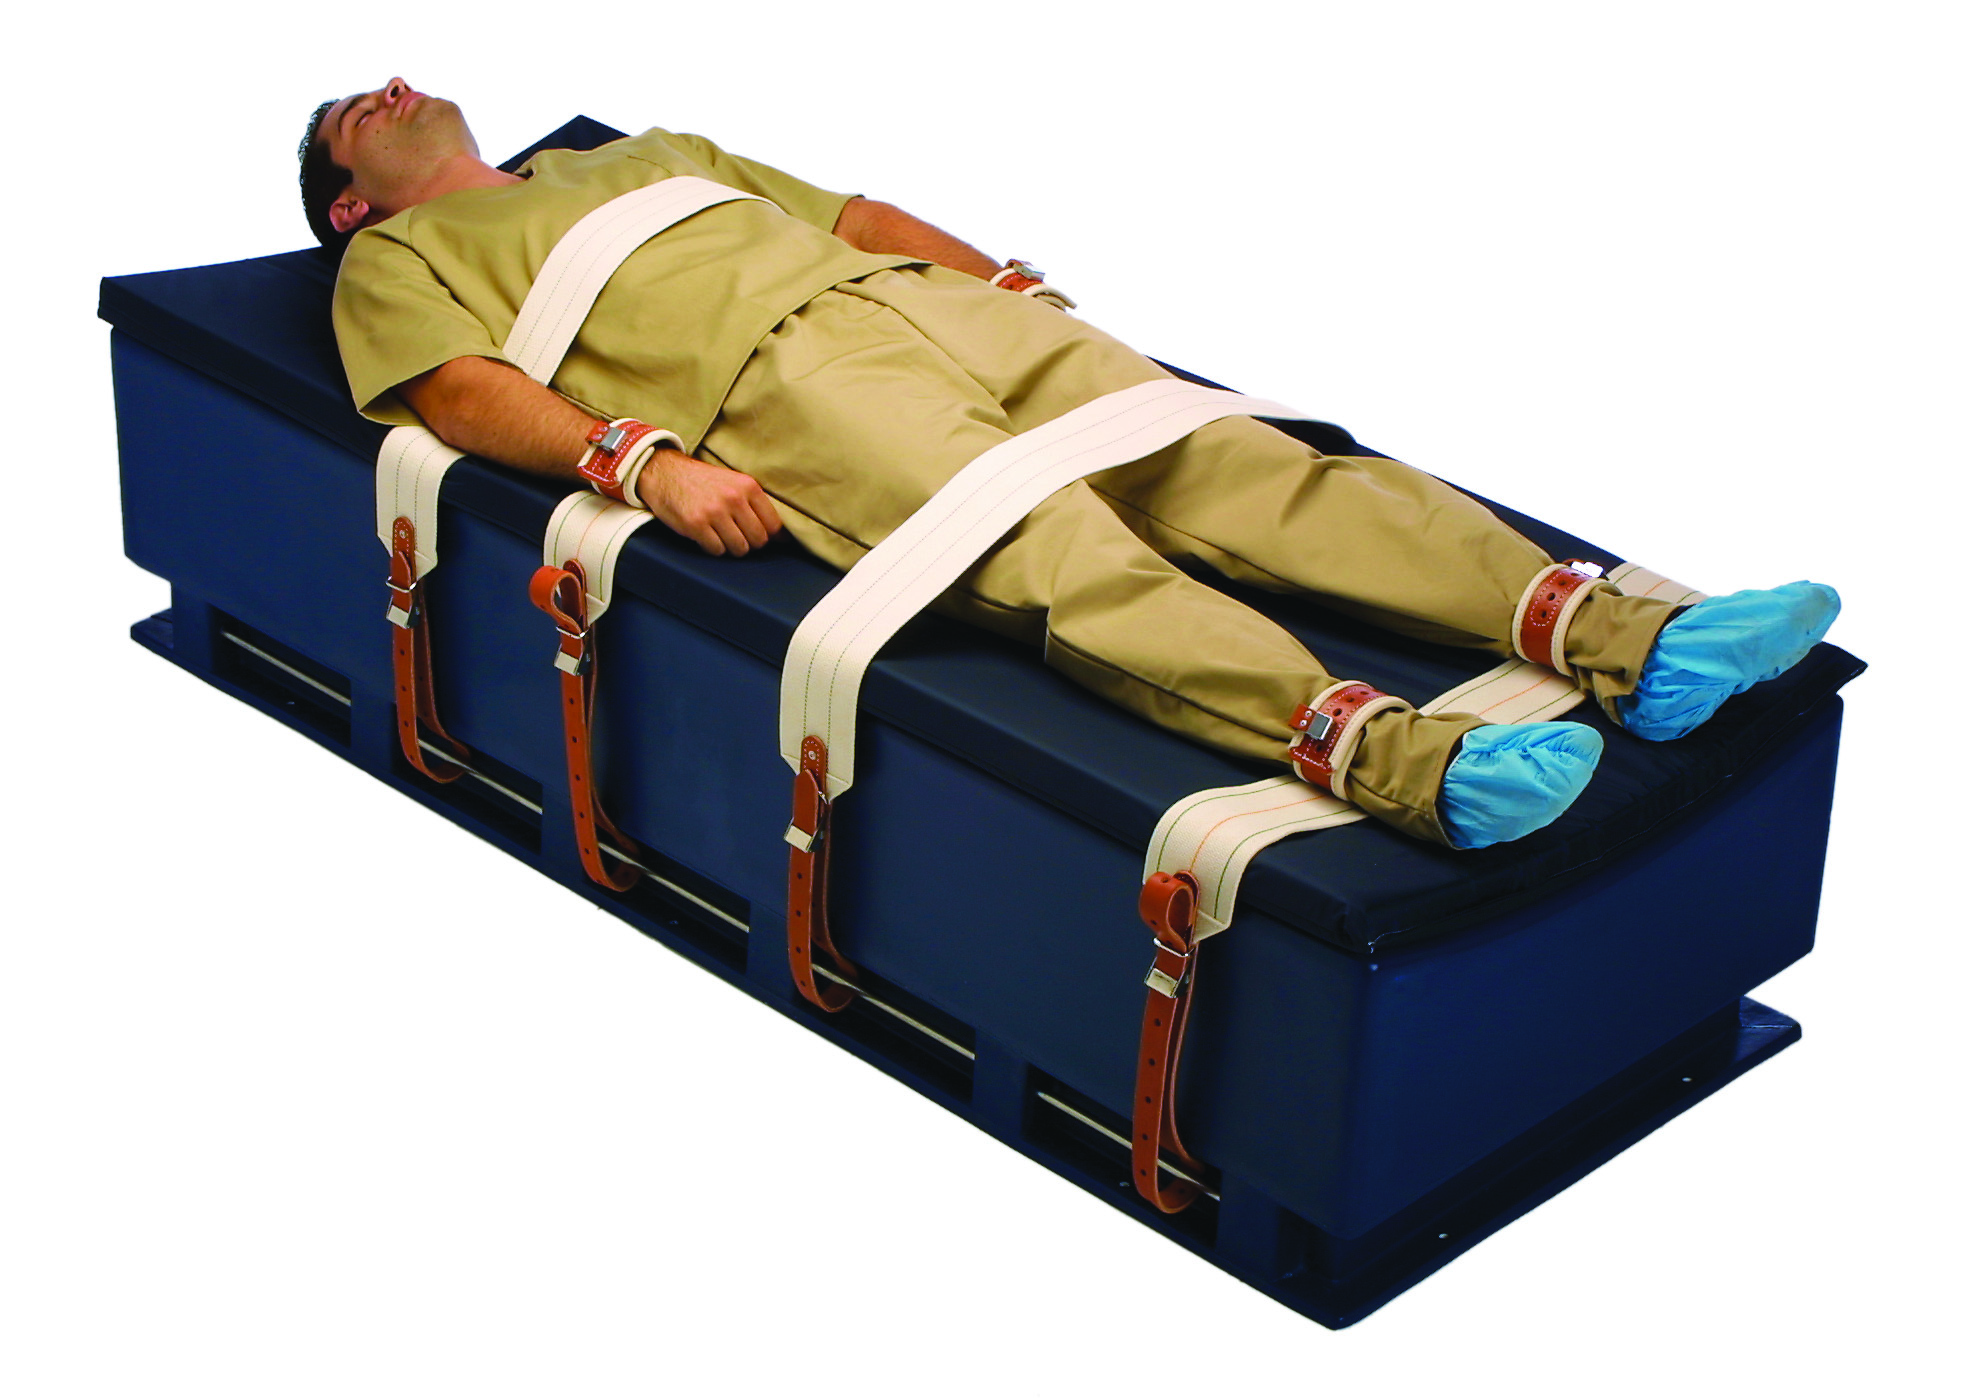 Restraint chair hospital in the restraint chair and - Featured Products